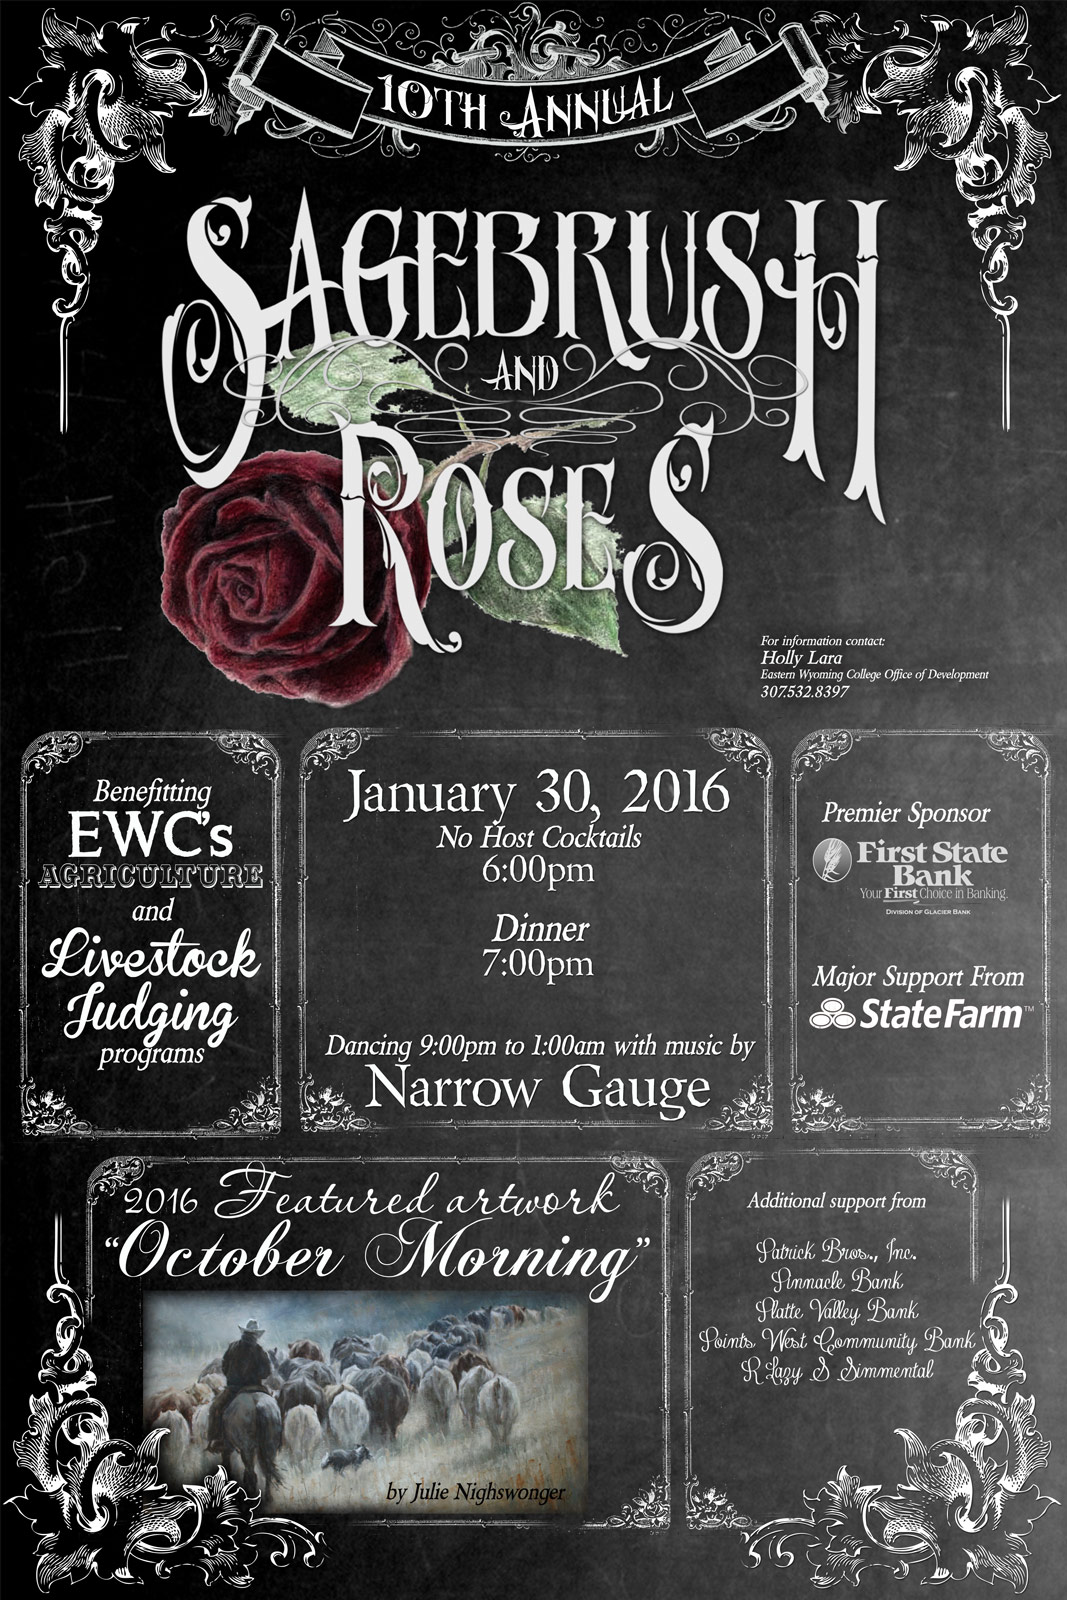 Sagebrush and Roses 2016